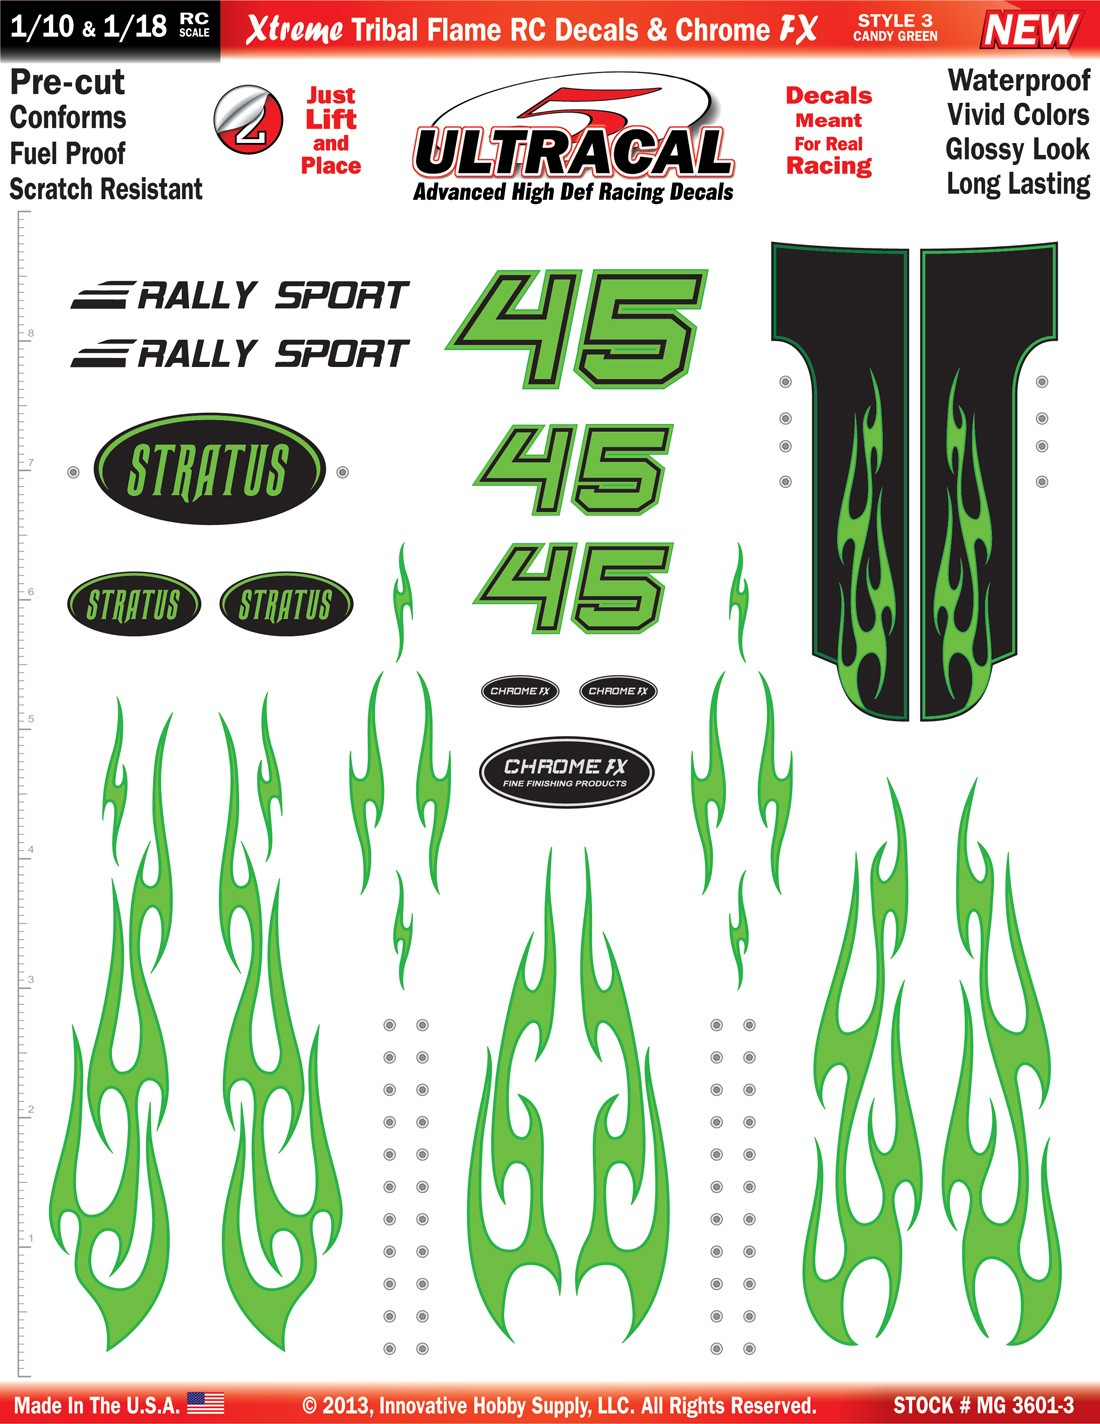 MG 3601-3 Ultracal Candy Green Xtreme Tribal Flame RC Decals & Chrome FX for 1:10 and 1:18 Scale